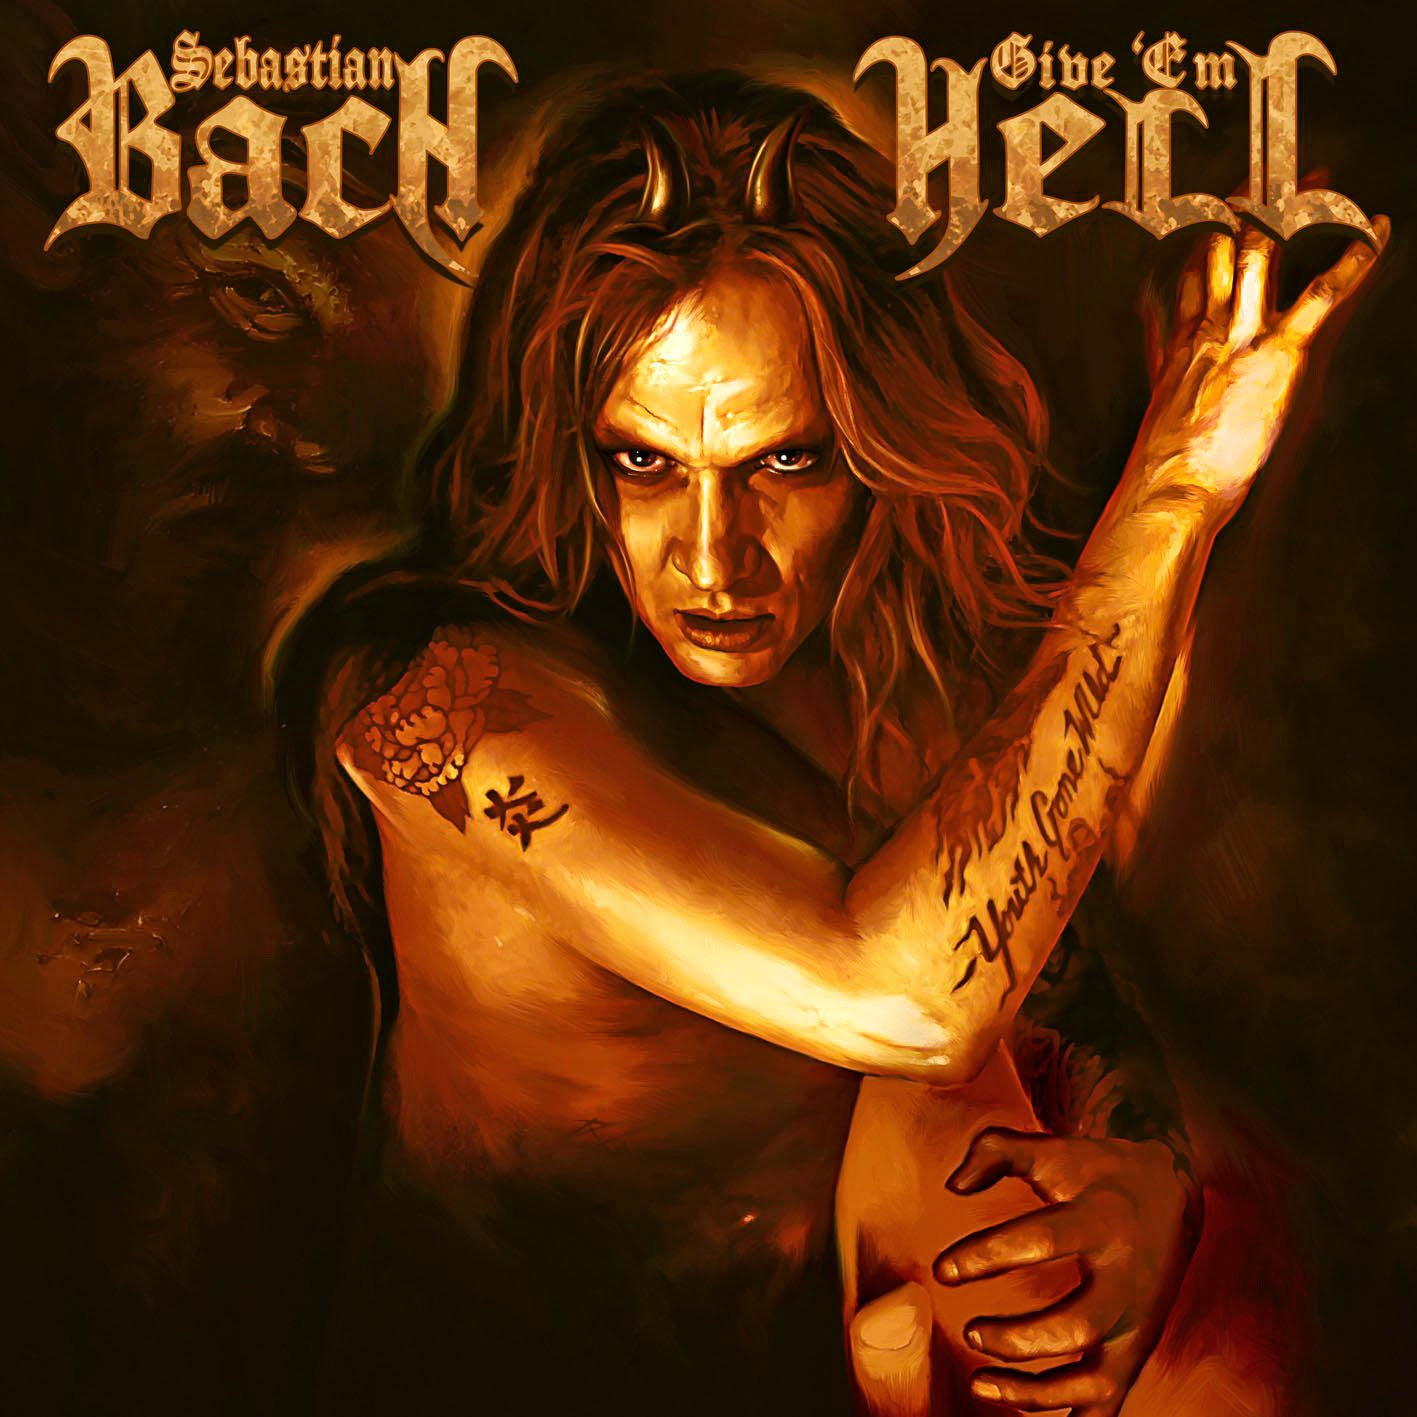 http://rock-and-metal-4-you.blogspot.de/2014/04/cd-review-sebastian-bach-give-em-hell.html